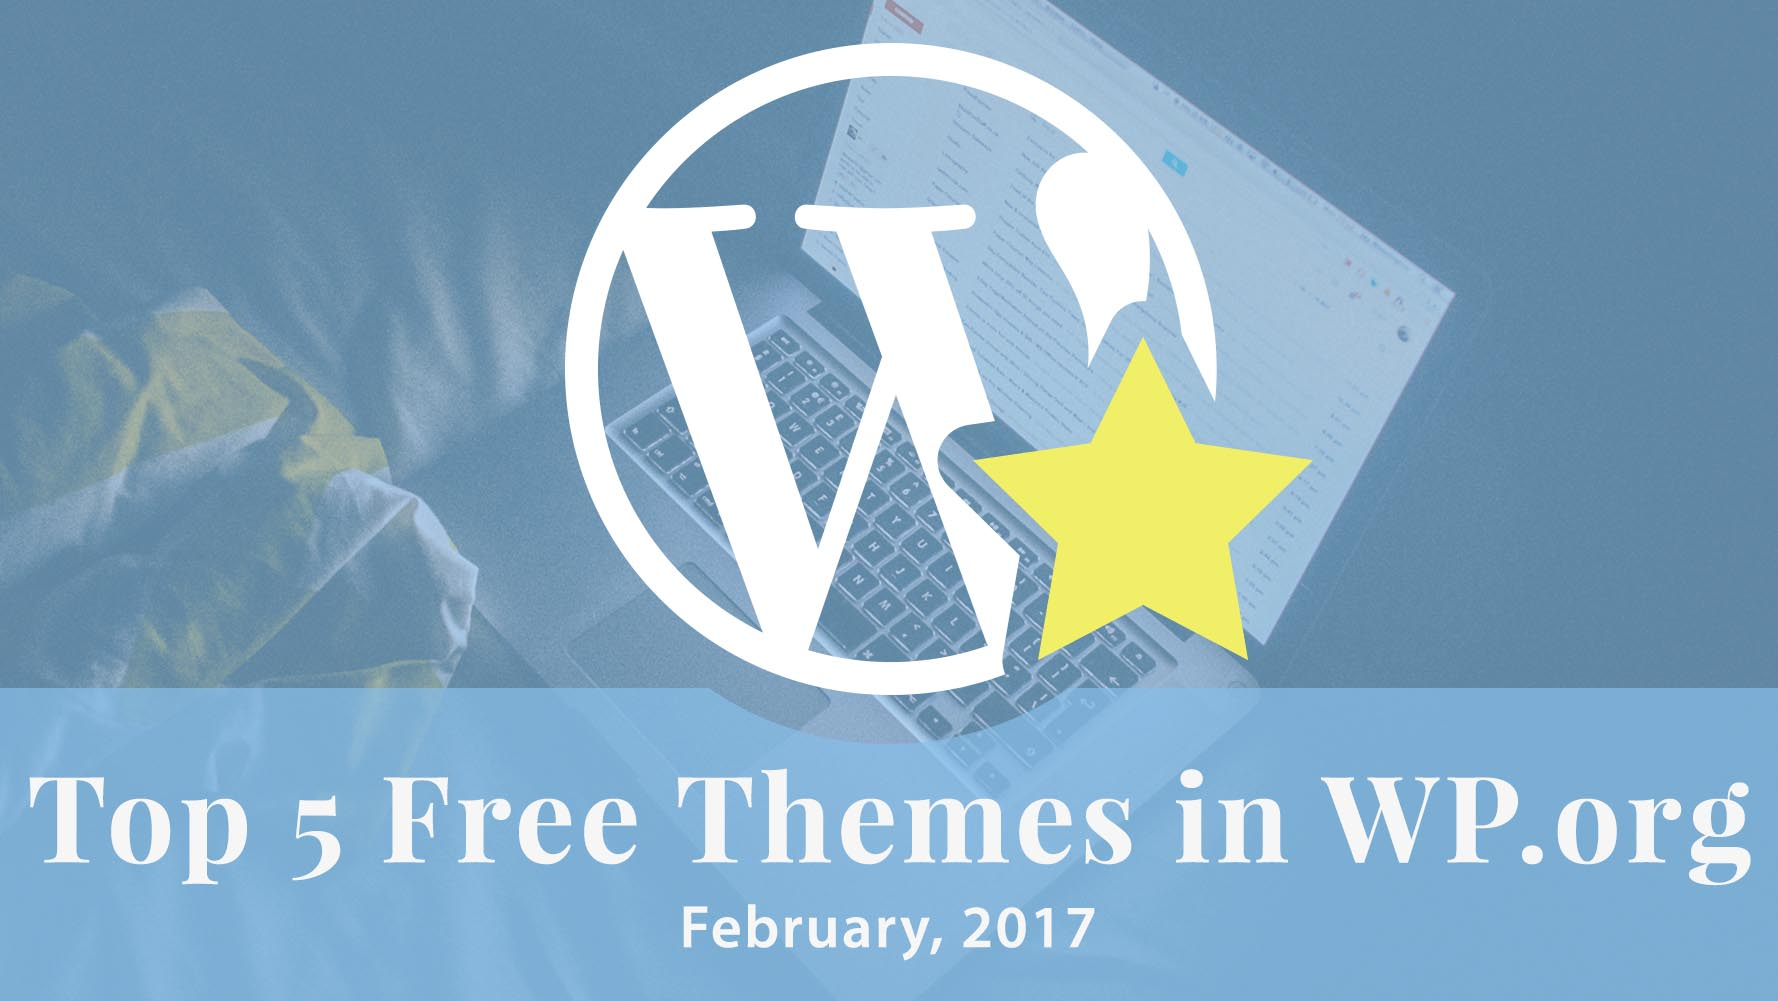 Top 5 Free Themes in WordPress.org - February 2017